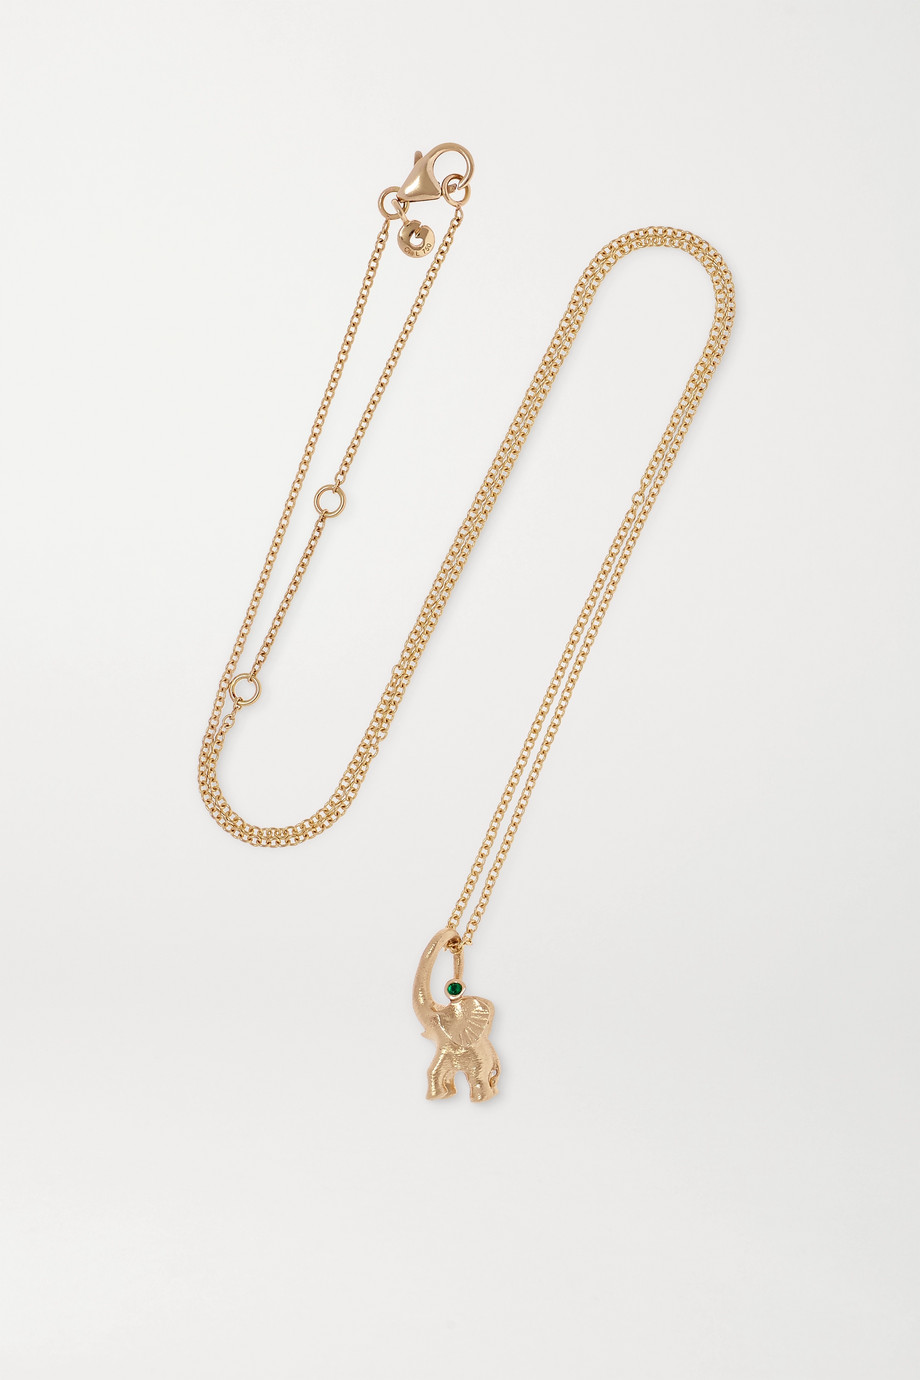 OLE LYNGGAARD COPENHAGEN + Space For Giants My Little World 18-karat gold emerald necklace